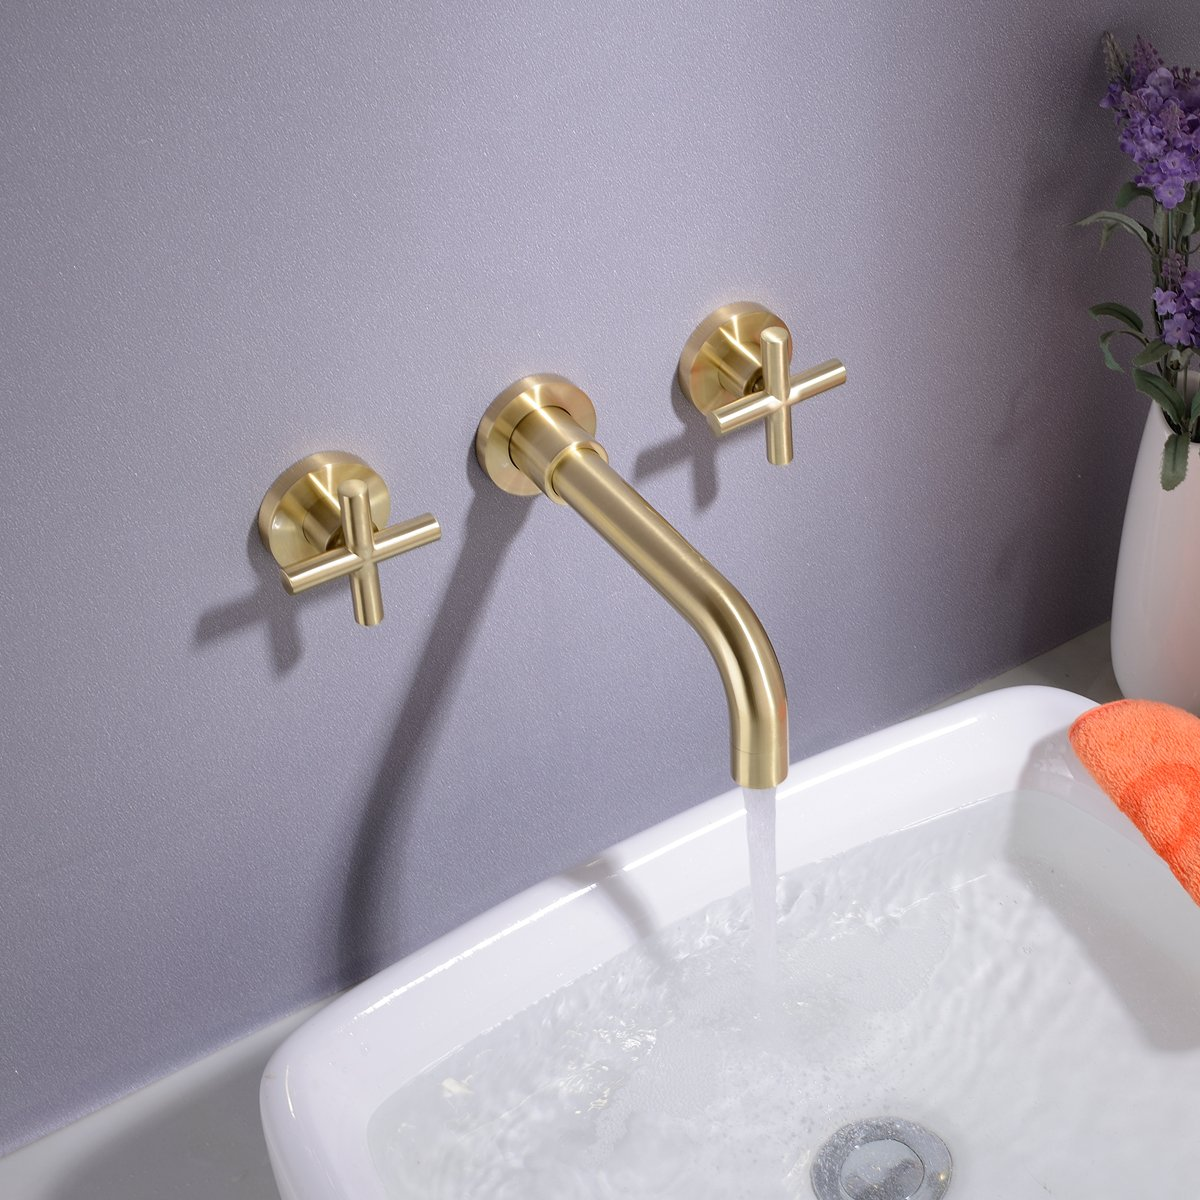 Brushed Gold TRUSTMI Bathroom Faucet Brushed Gold or Matte Black Double Handle Wall Mounted Bathroom Sink Faucet and Rough in Valve Included